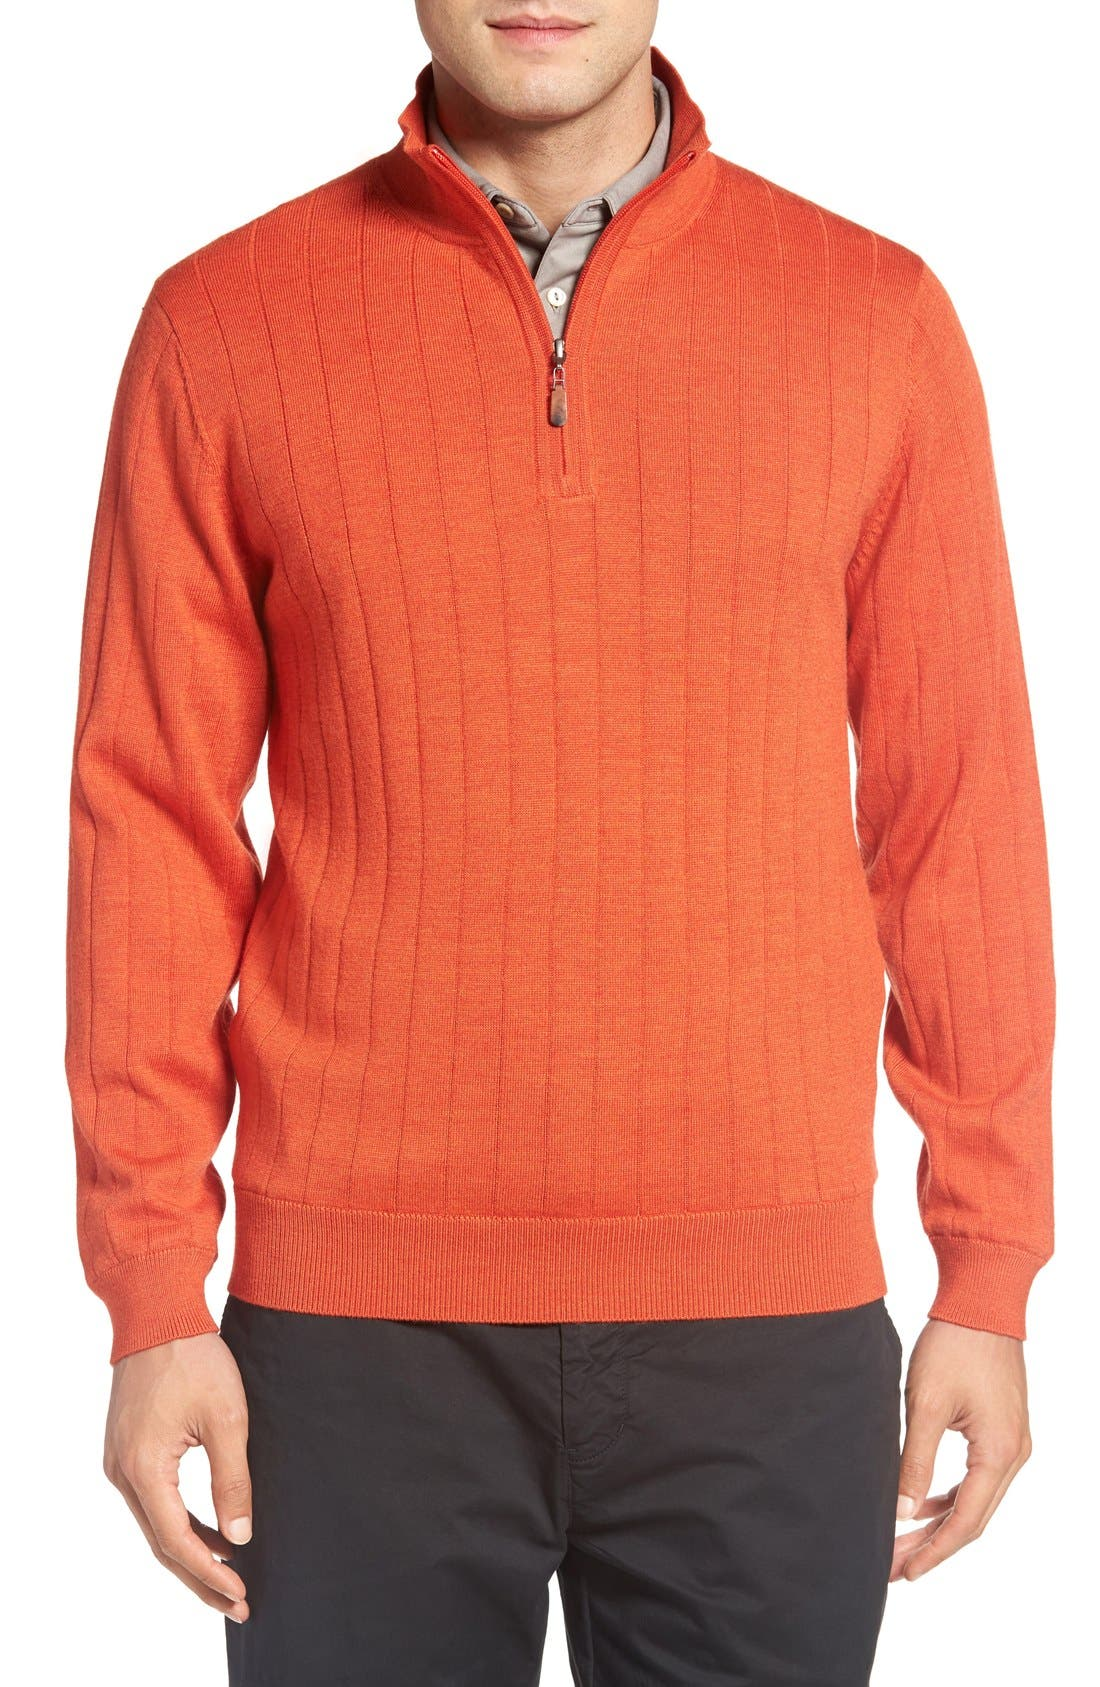 Main Image - Bobby Jones Windproof Merino Wool Quarter Zip Sweater